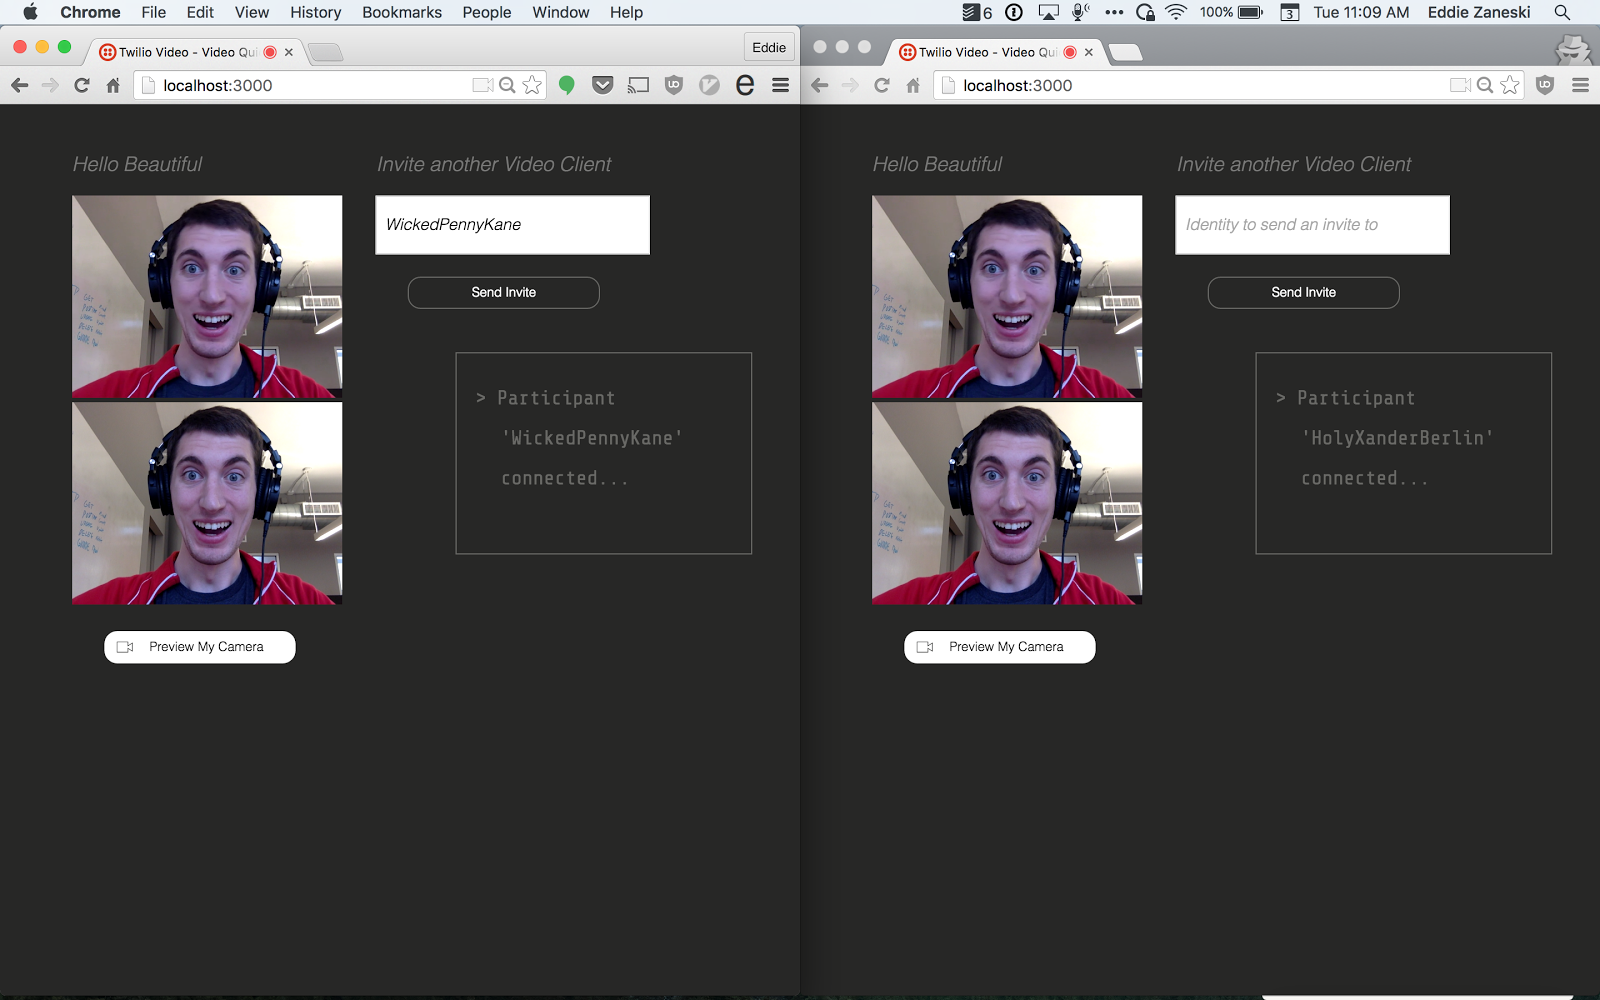 How To Add React Powered CSS Filters To Twilio Video - Twilio